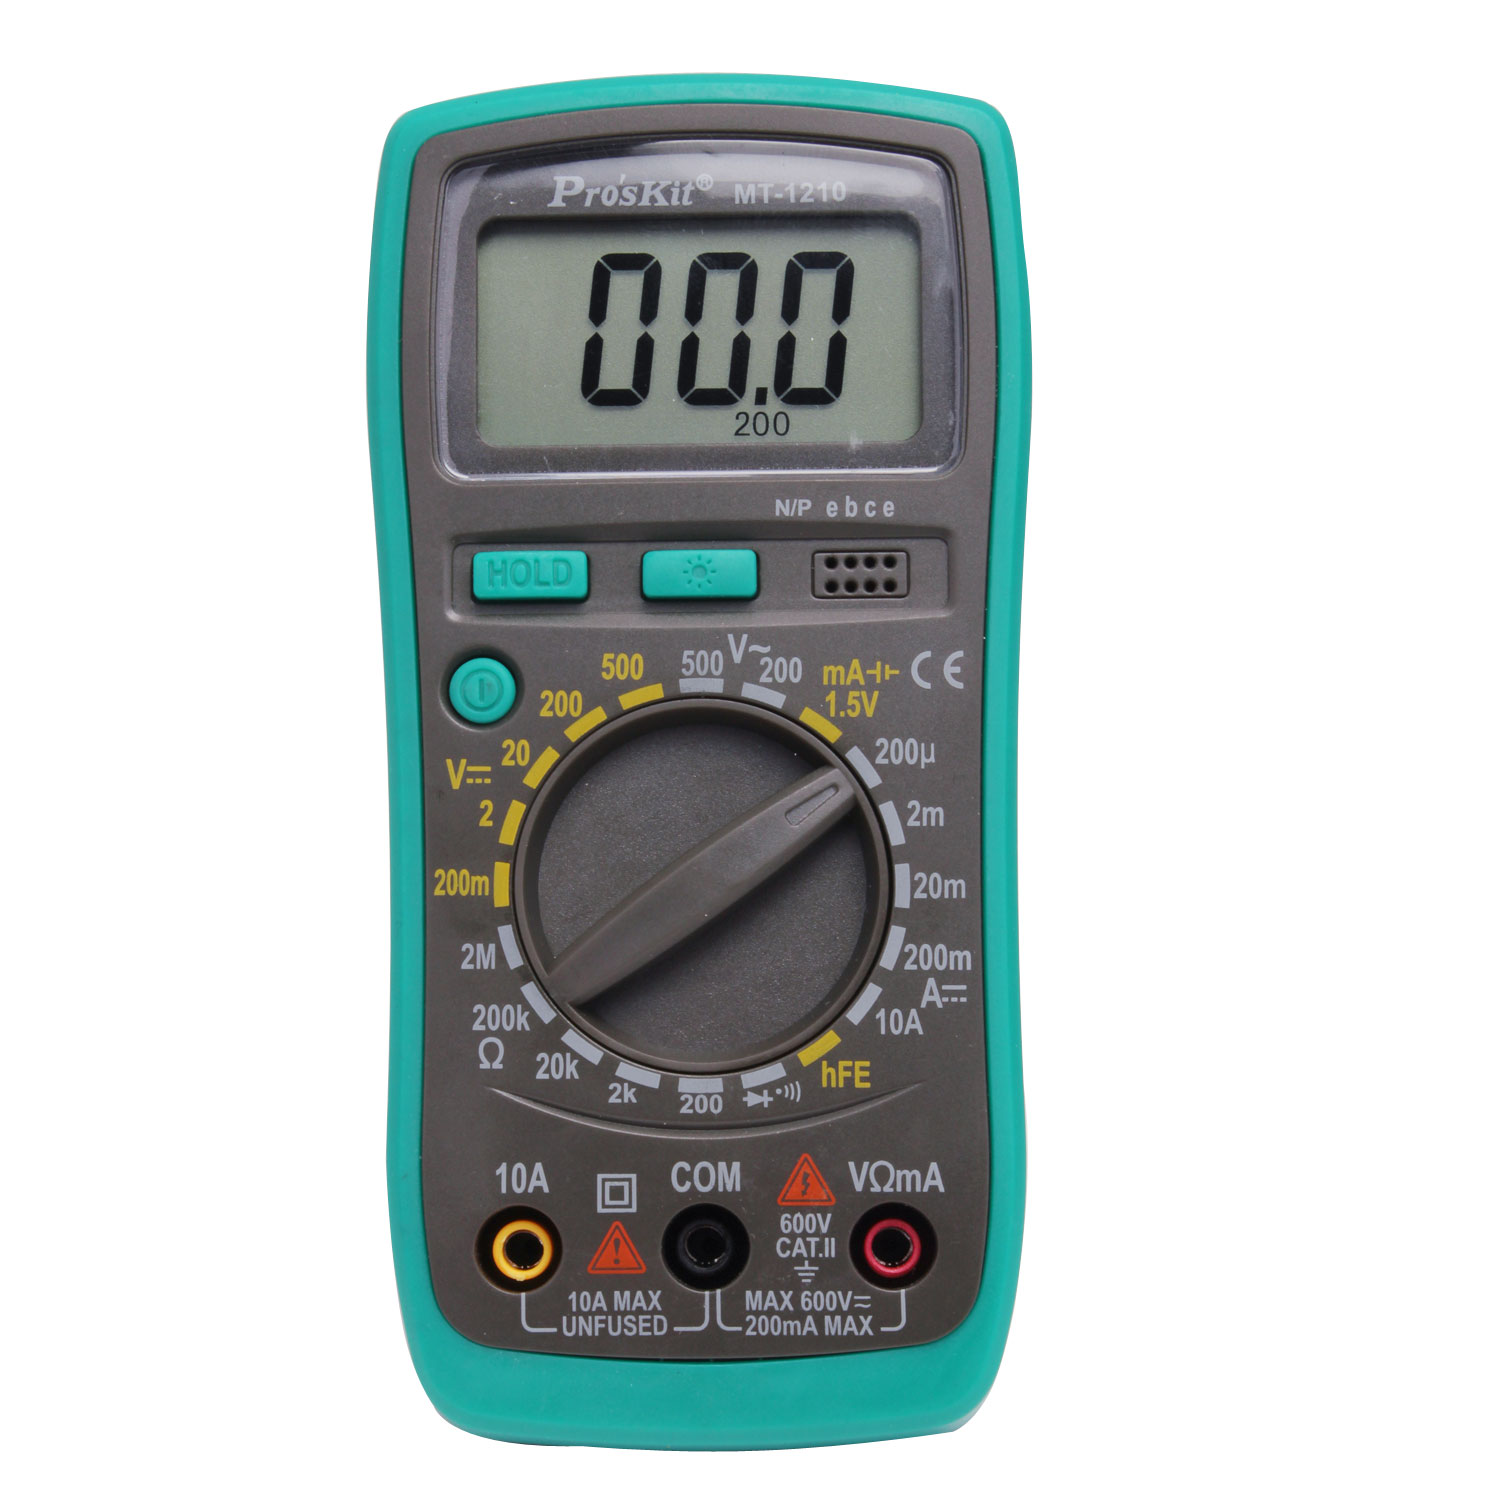 Table 1210 multifunctional digital meter table(China (Mainland))